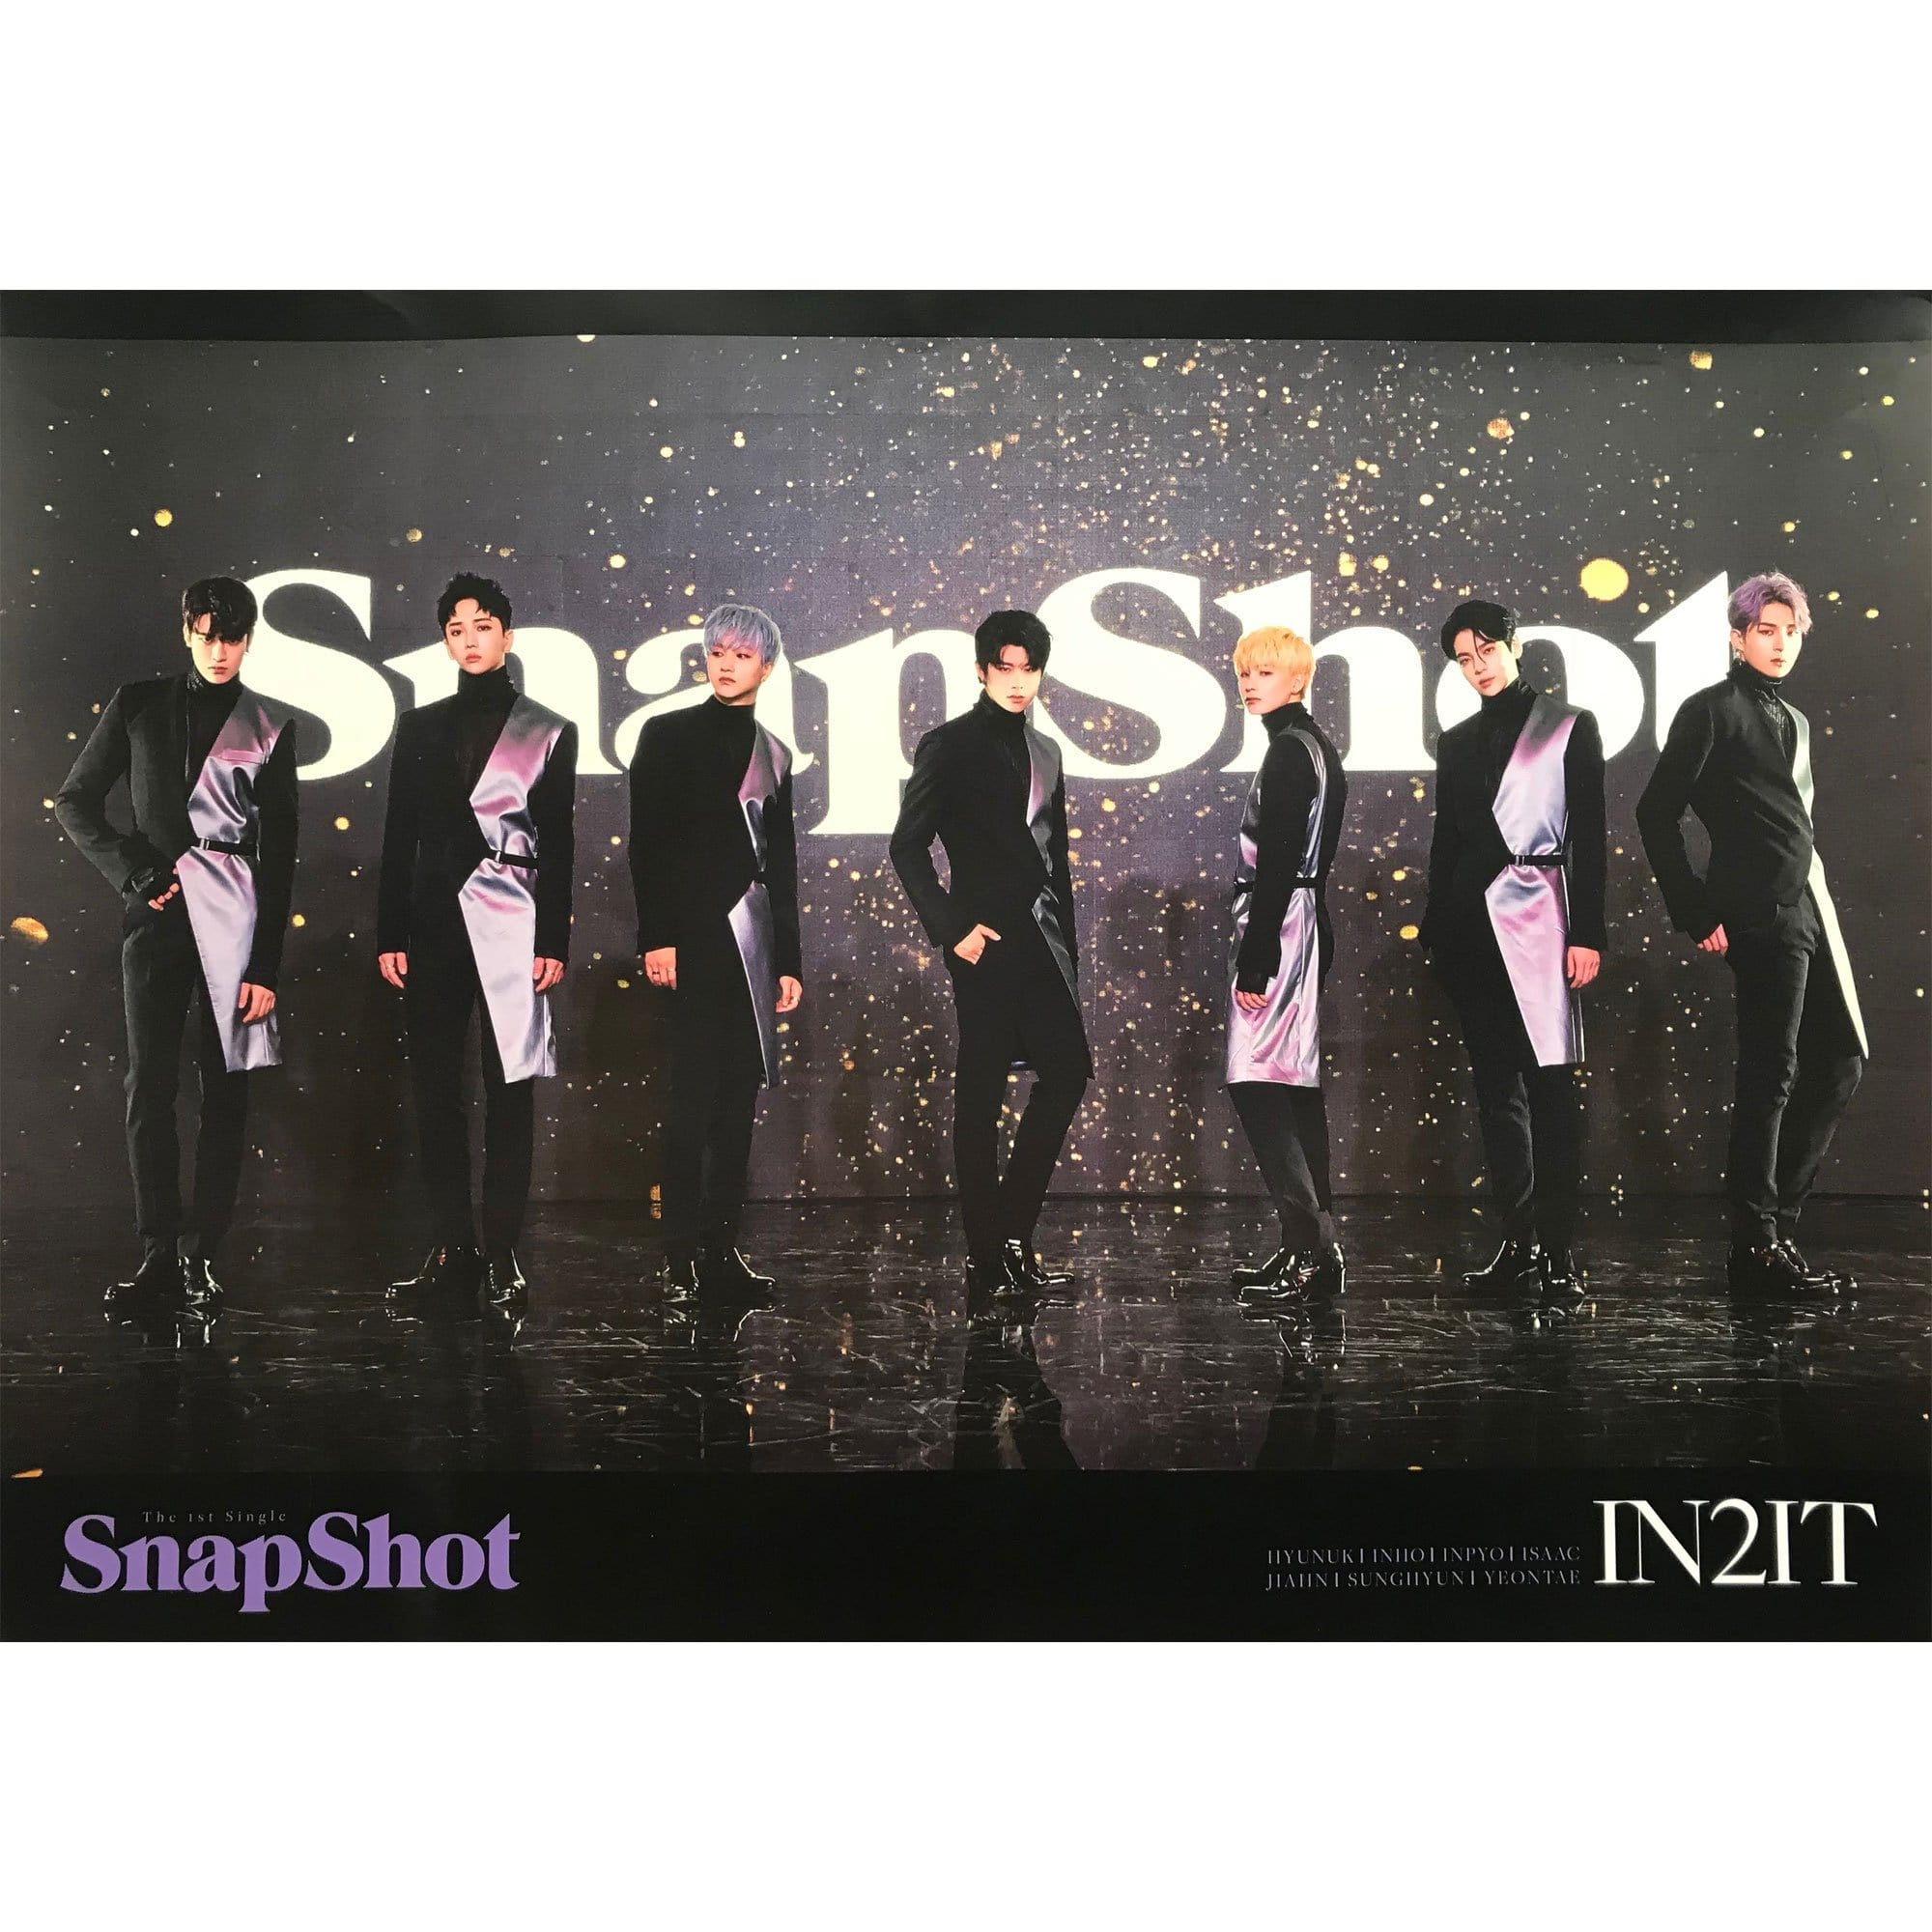 인투잇 | IN2IT | 1st single album - snapshot | POSTER